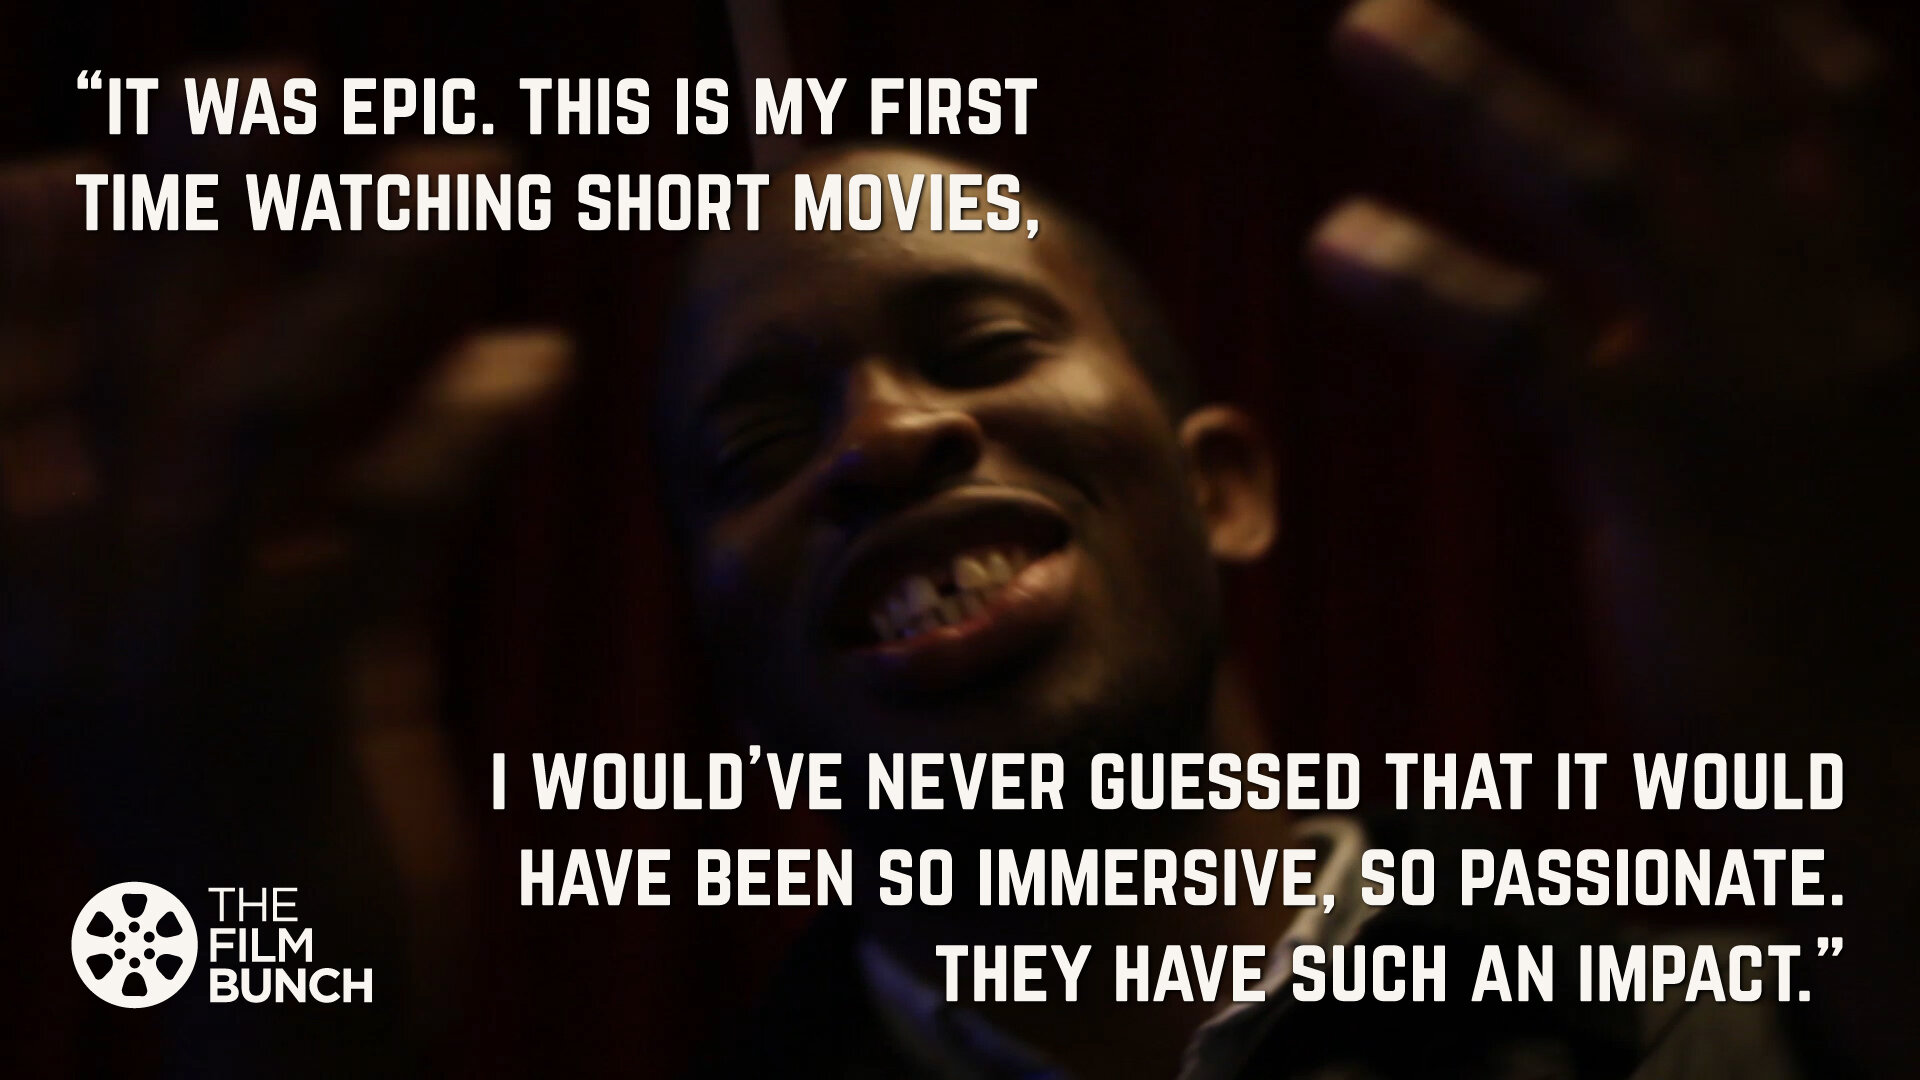 The-Film-Bunch-Quotes-03.jpg